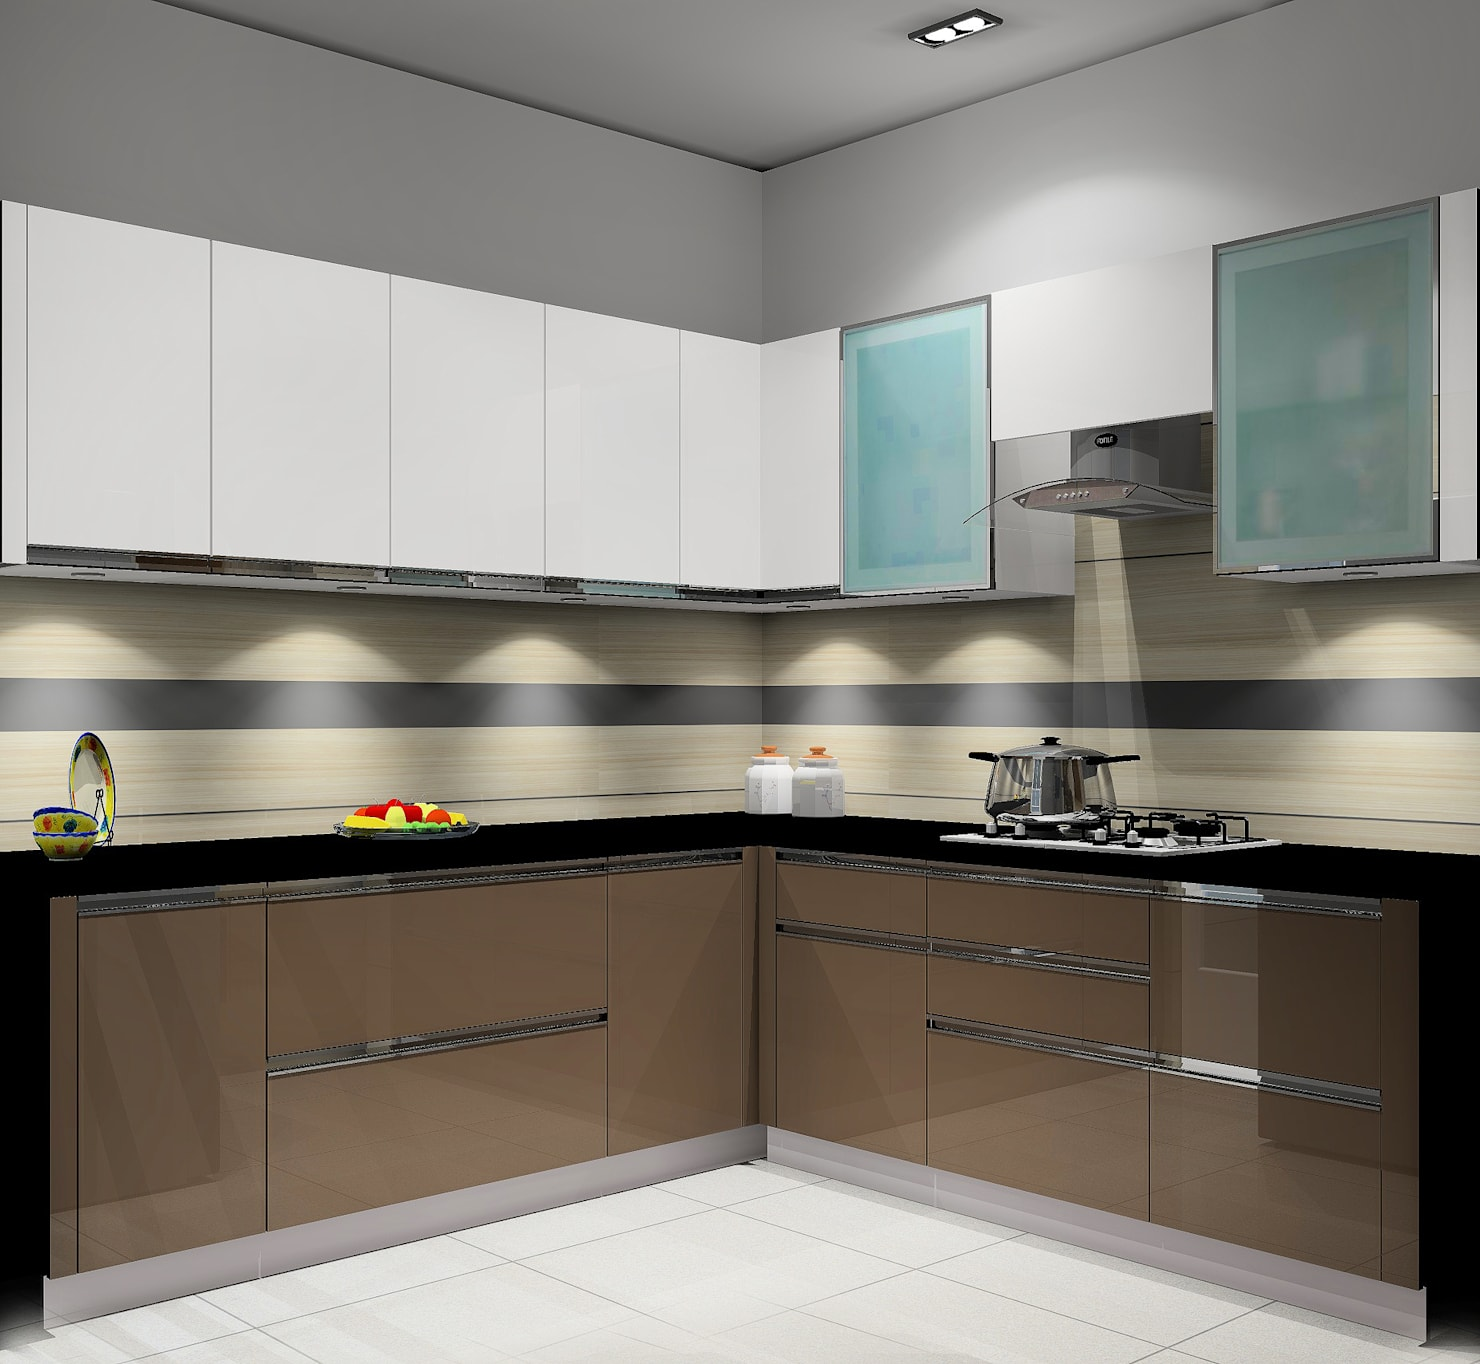 House Interior:  Built-in kitchens by TheMistris